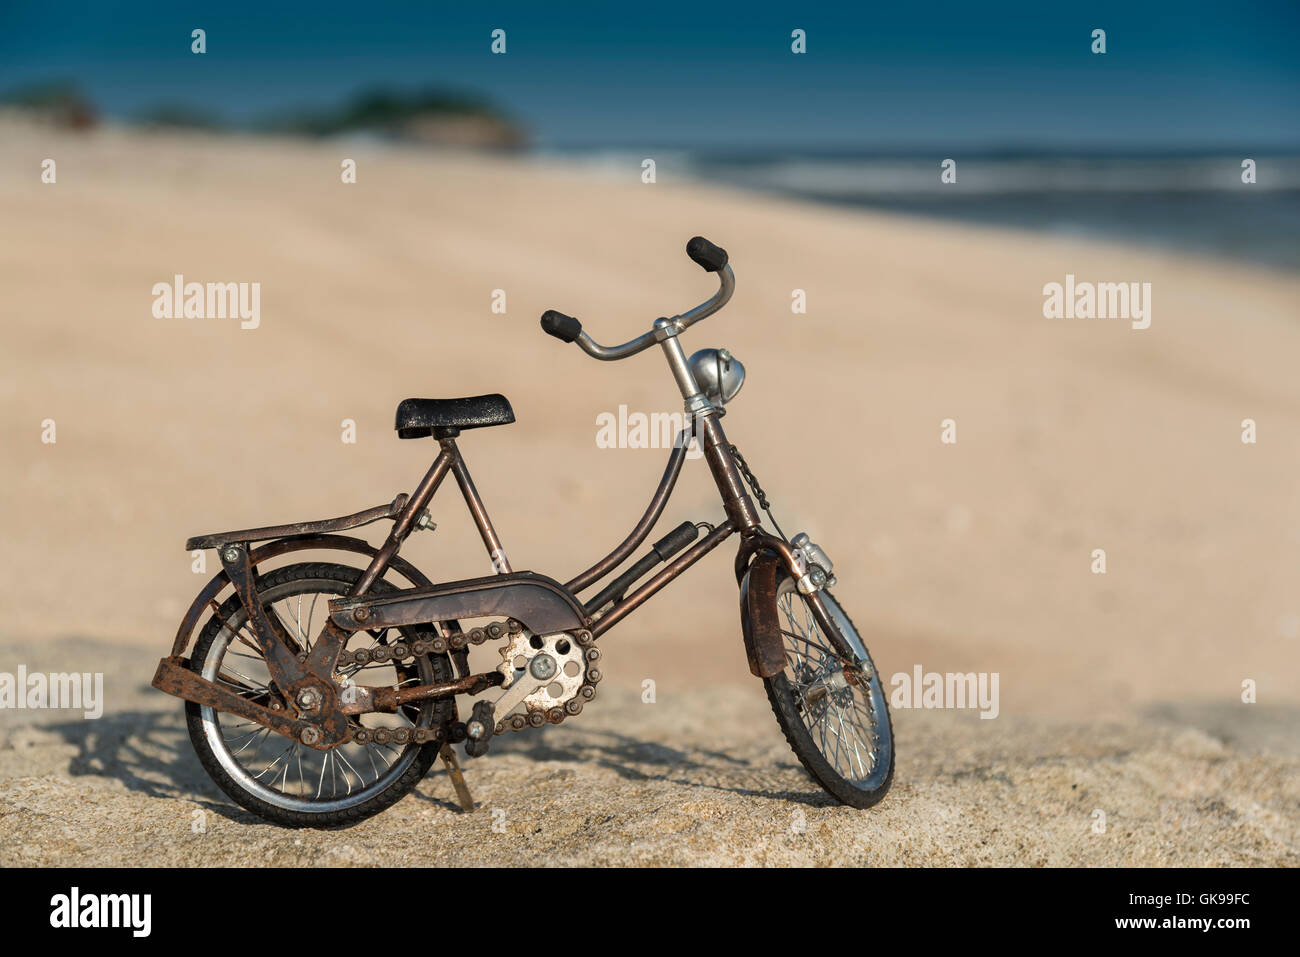 Small model bicycle on the beach - Stock Image